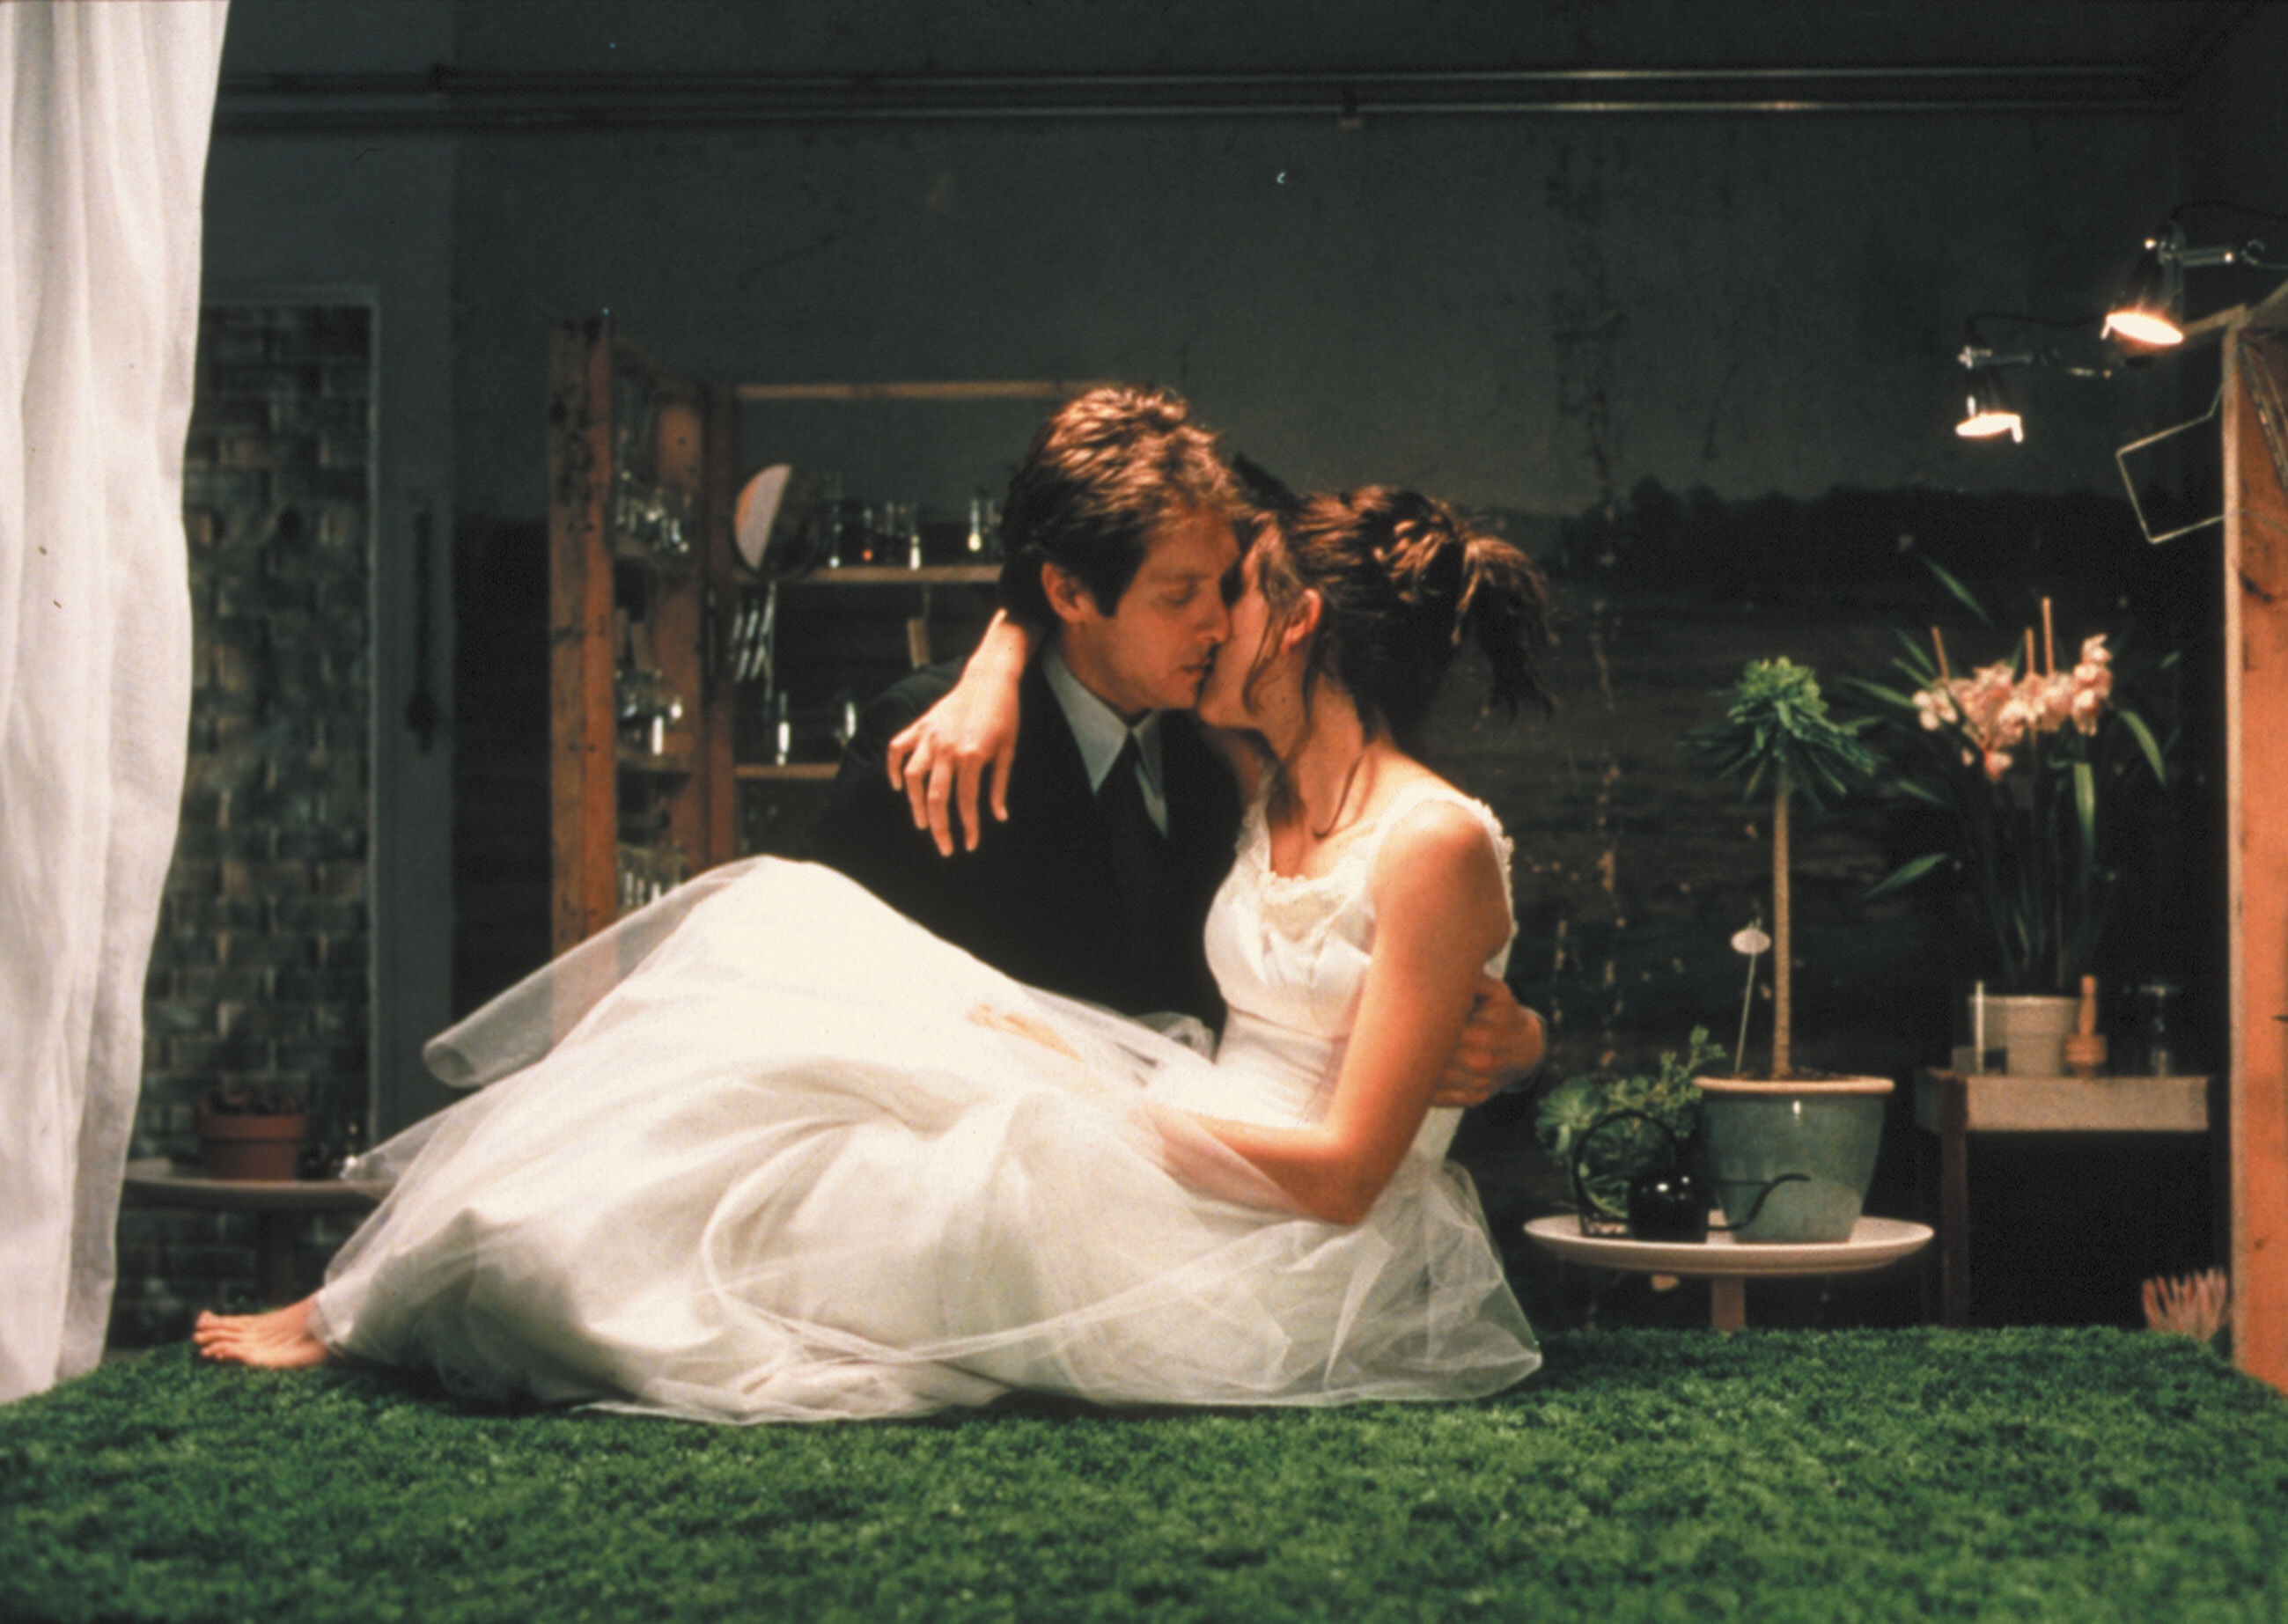 Lee is wearing a wedding dress and being held by Mr Grey as he lays her down on a box covered in astroturf